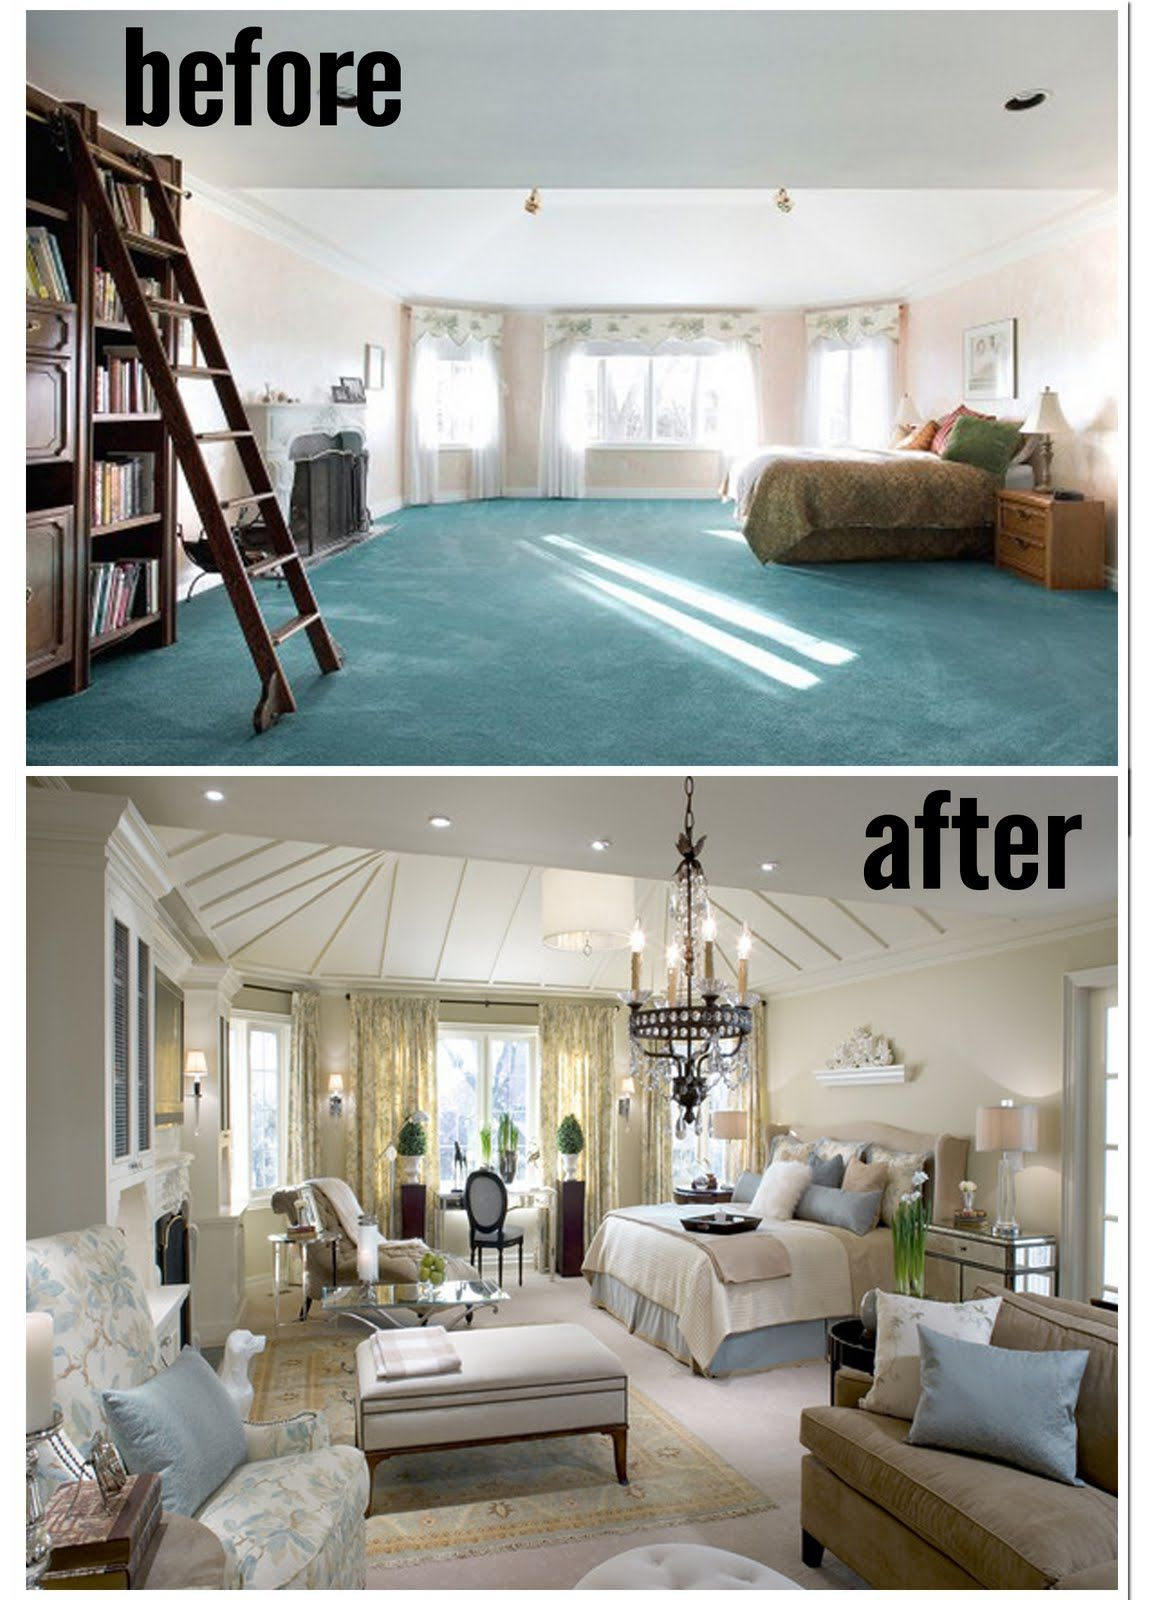 Master Bedroom Makeover Ideas amazing before and after master bedroomscandice olson. now